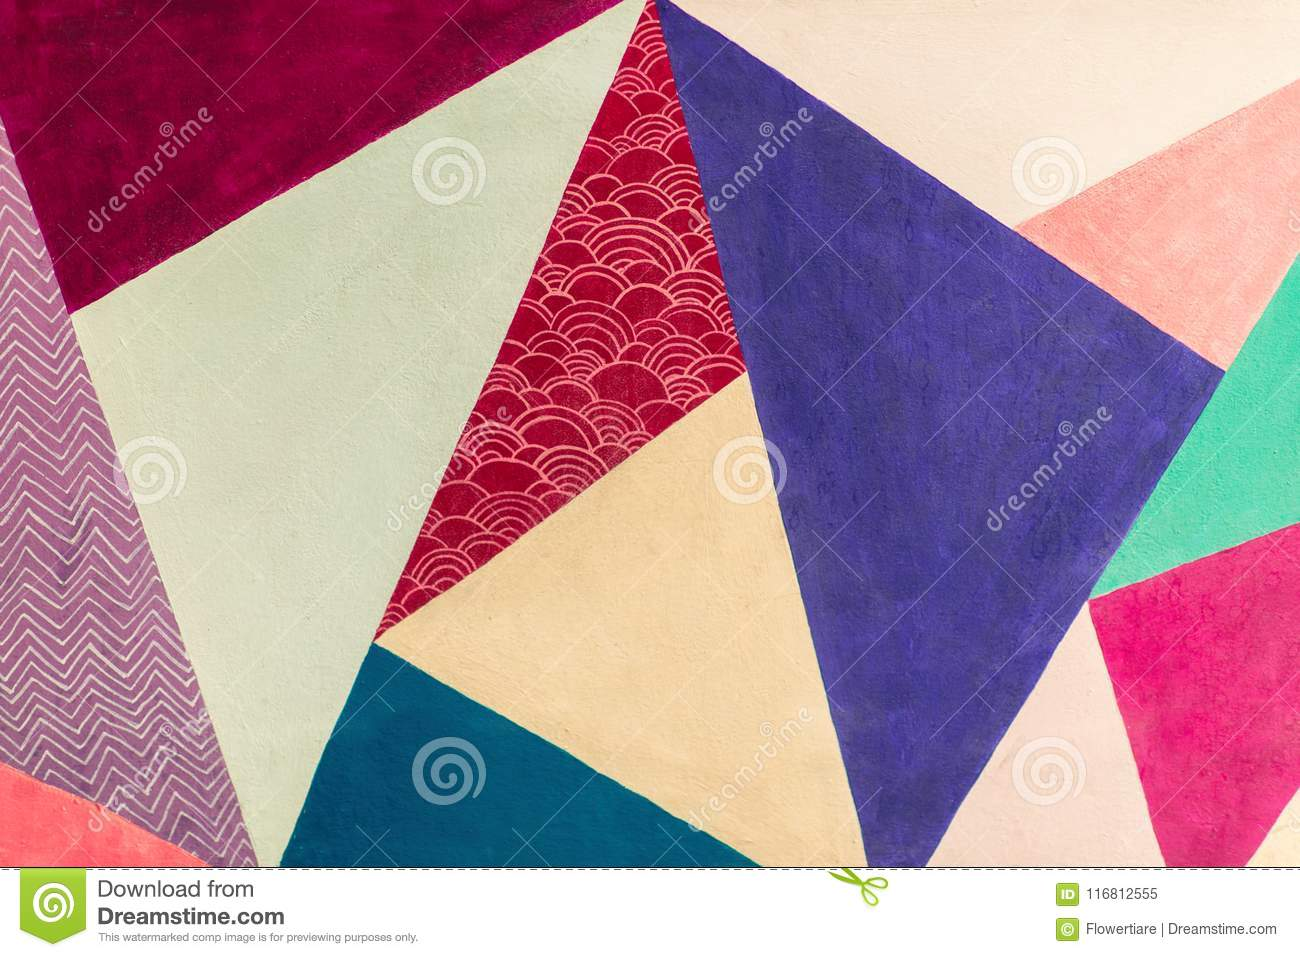 Geometric background of wall with bright tones. pop art style